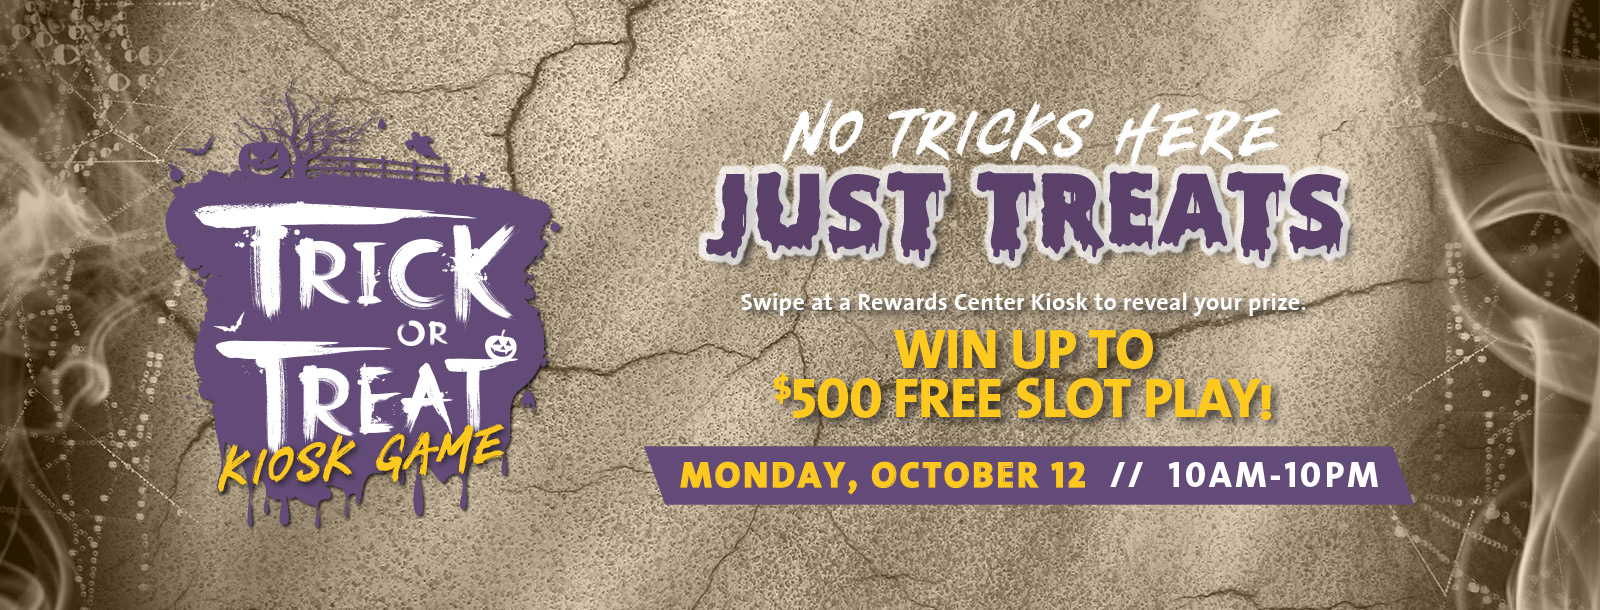 trick or treat kiosk game sioux city promotions